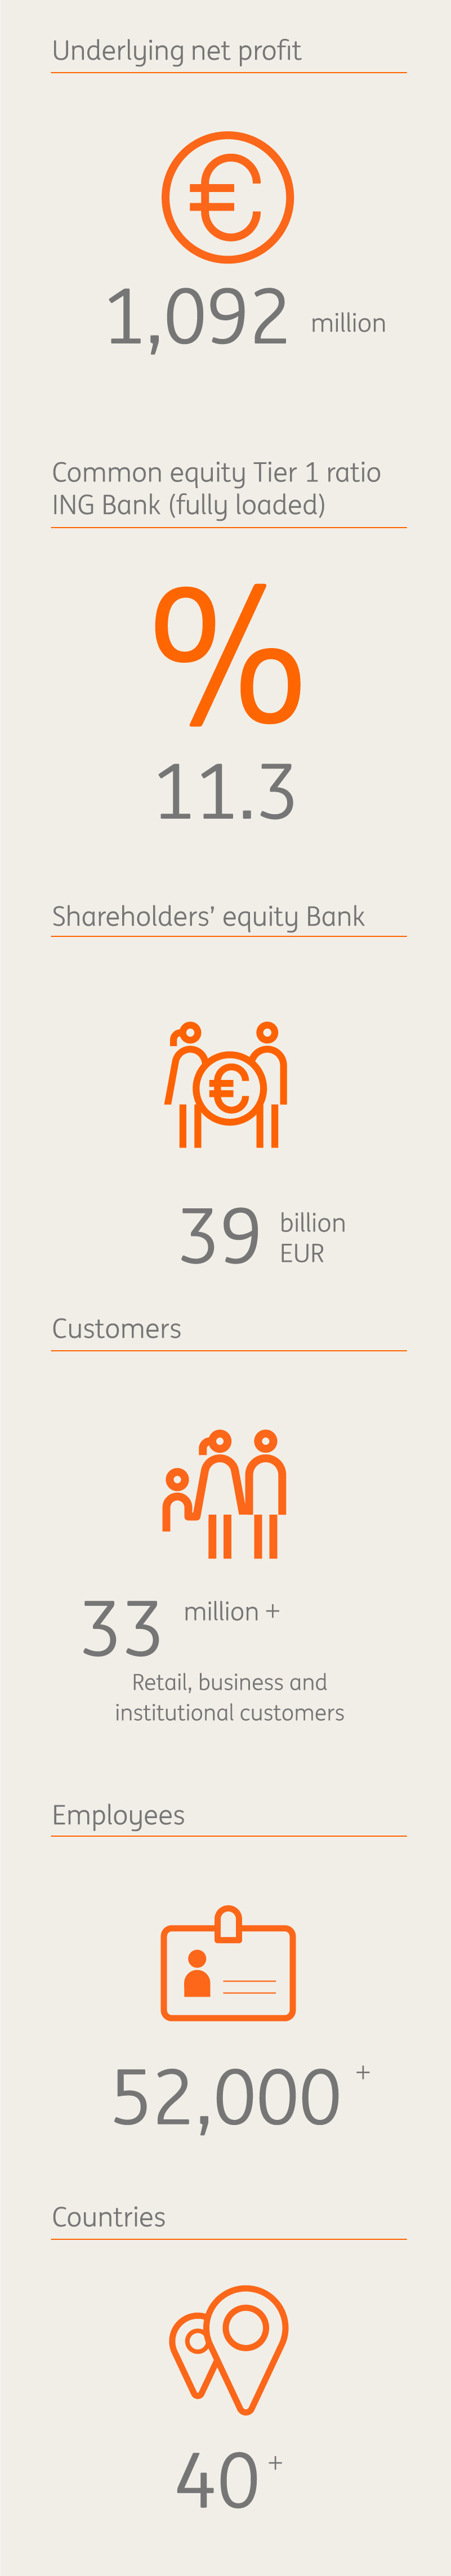 Quarterly Highlights ING Bank